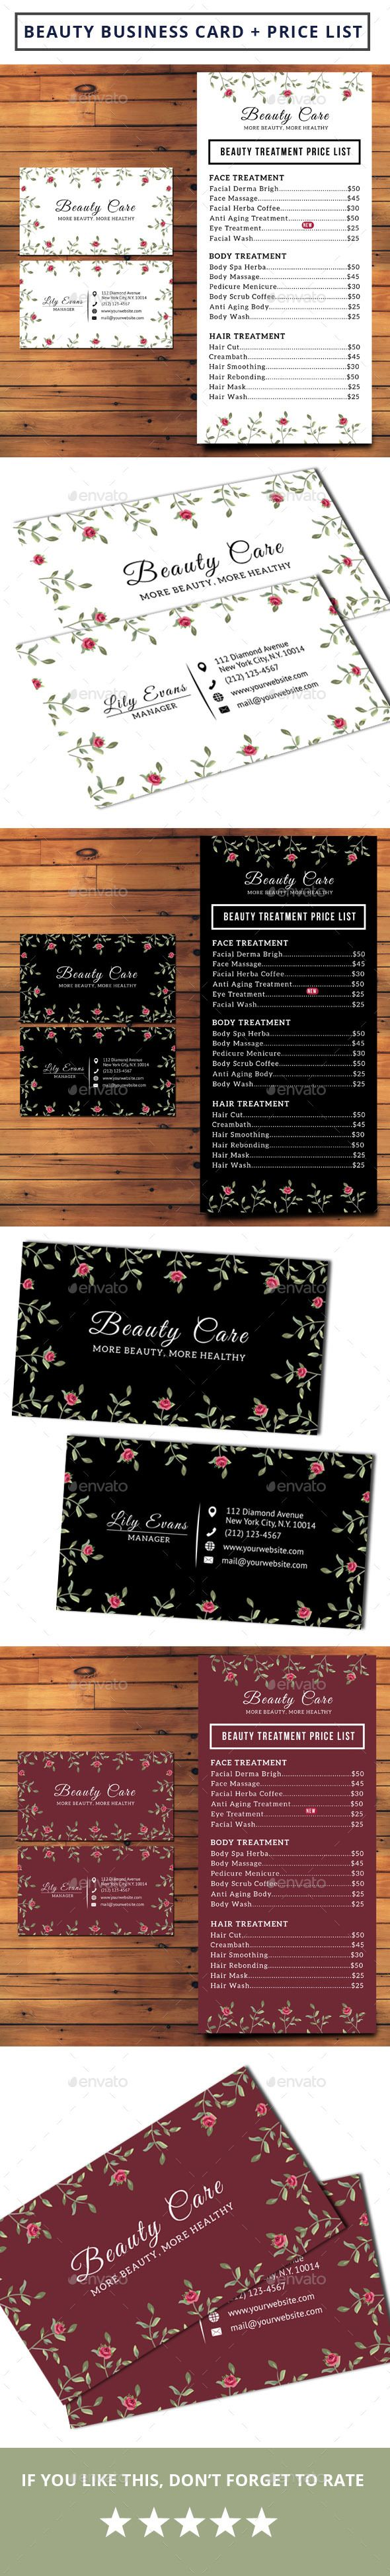 Beauty Business Card + Pricelist | Pinterest | Beauty business cards ...